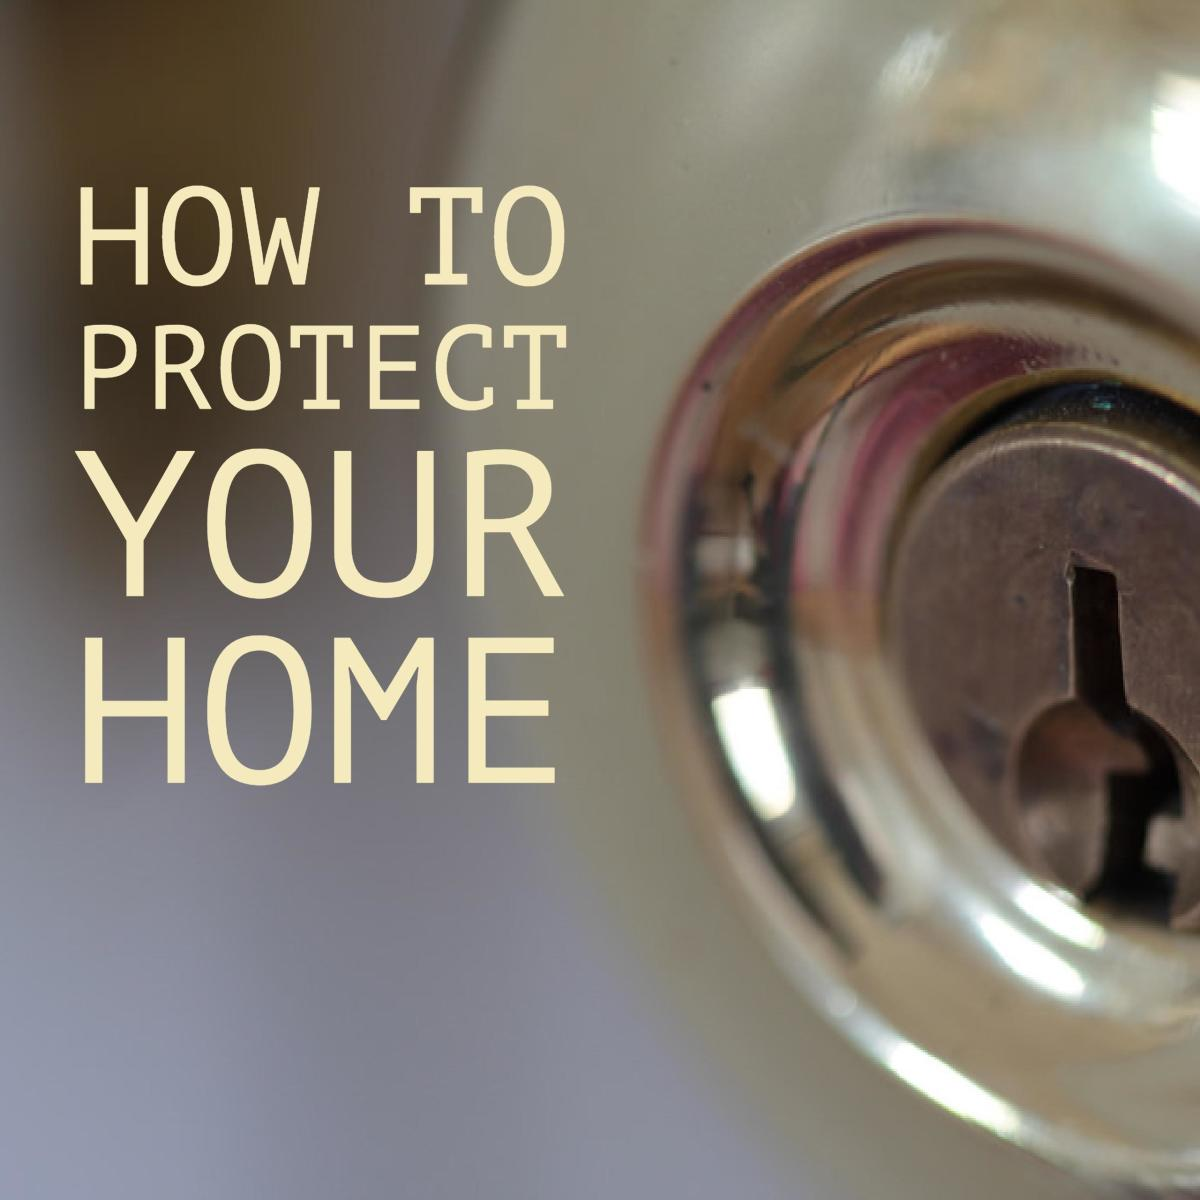 How to Improve Home Security in 14 Easy Ways